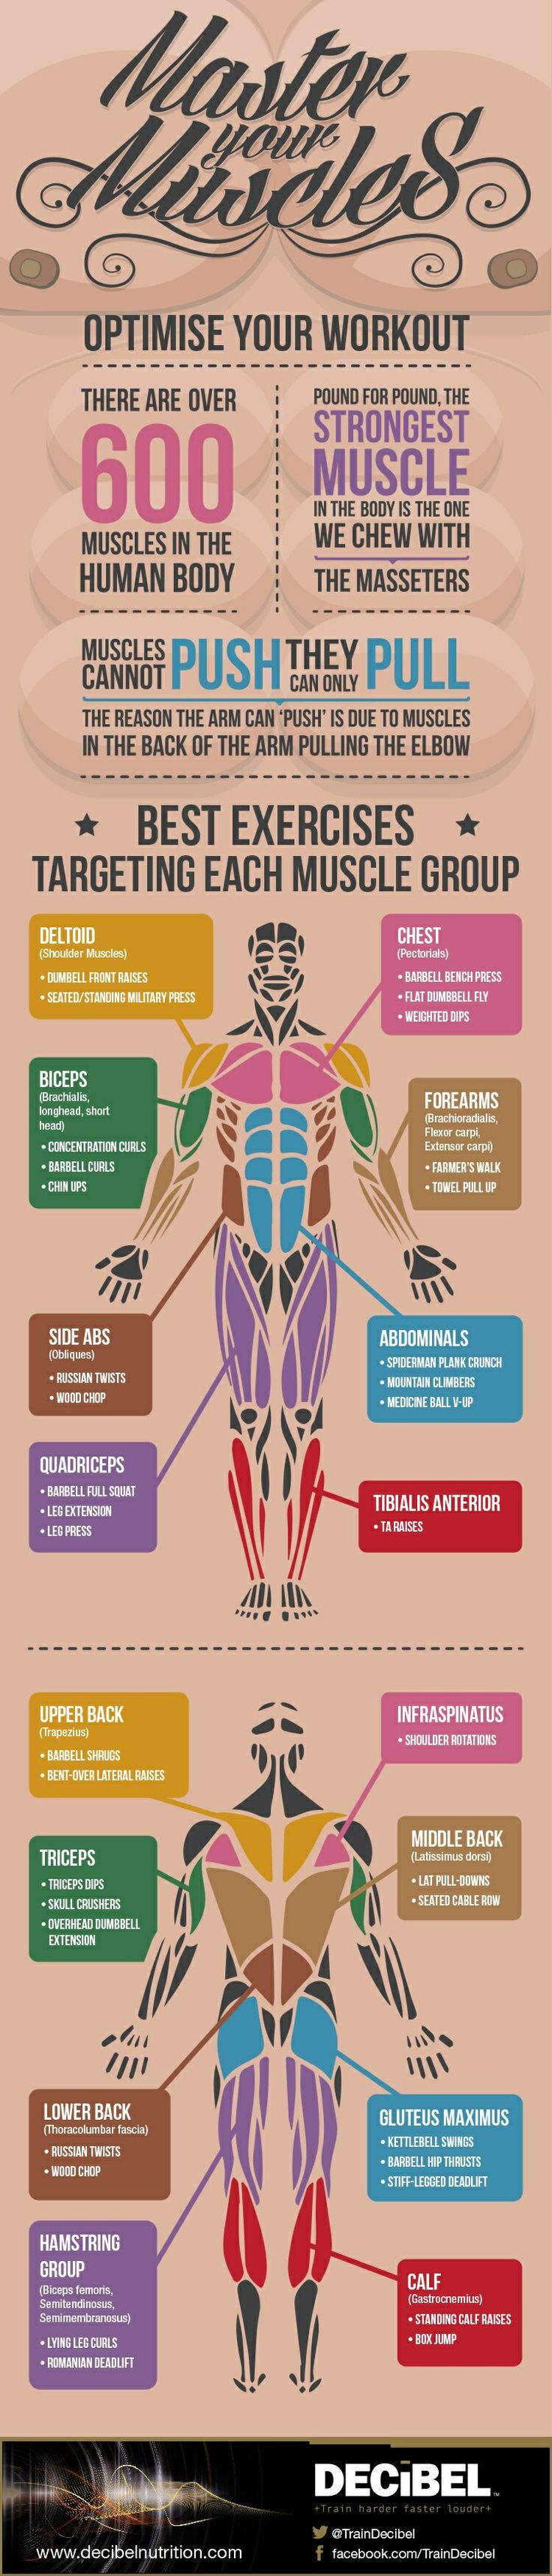 Master your muscles with this infographic on how to build muscle groups.